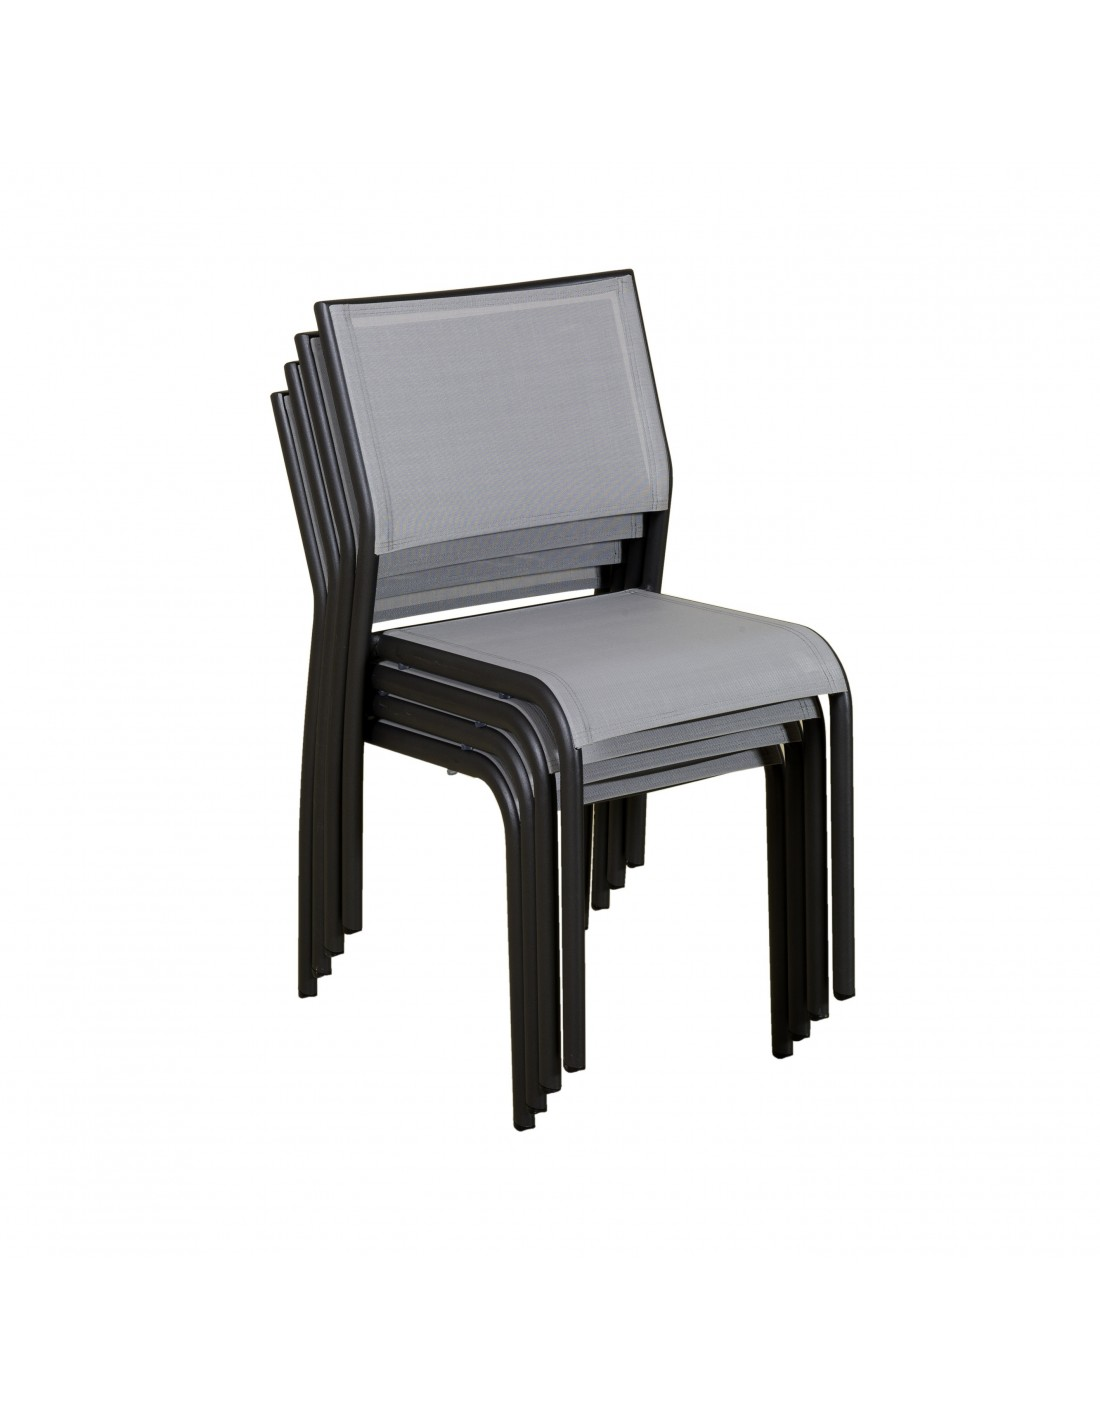 chaise empilable ticao aluminium et pvc les jardins. Black Bedroom Furniture Sets. Home Design Ideas